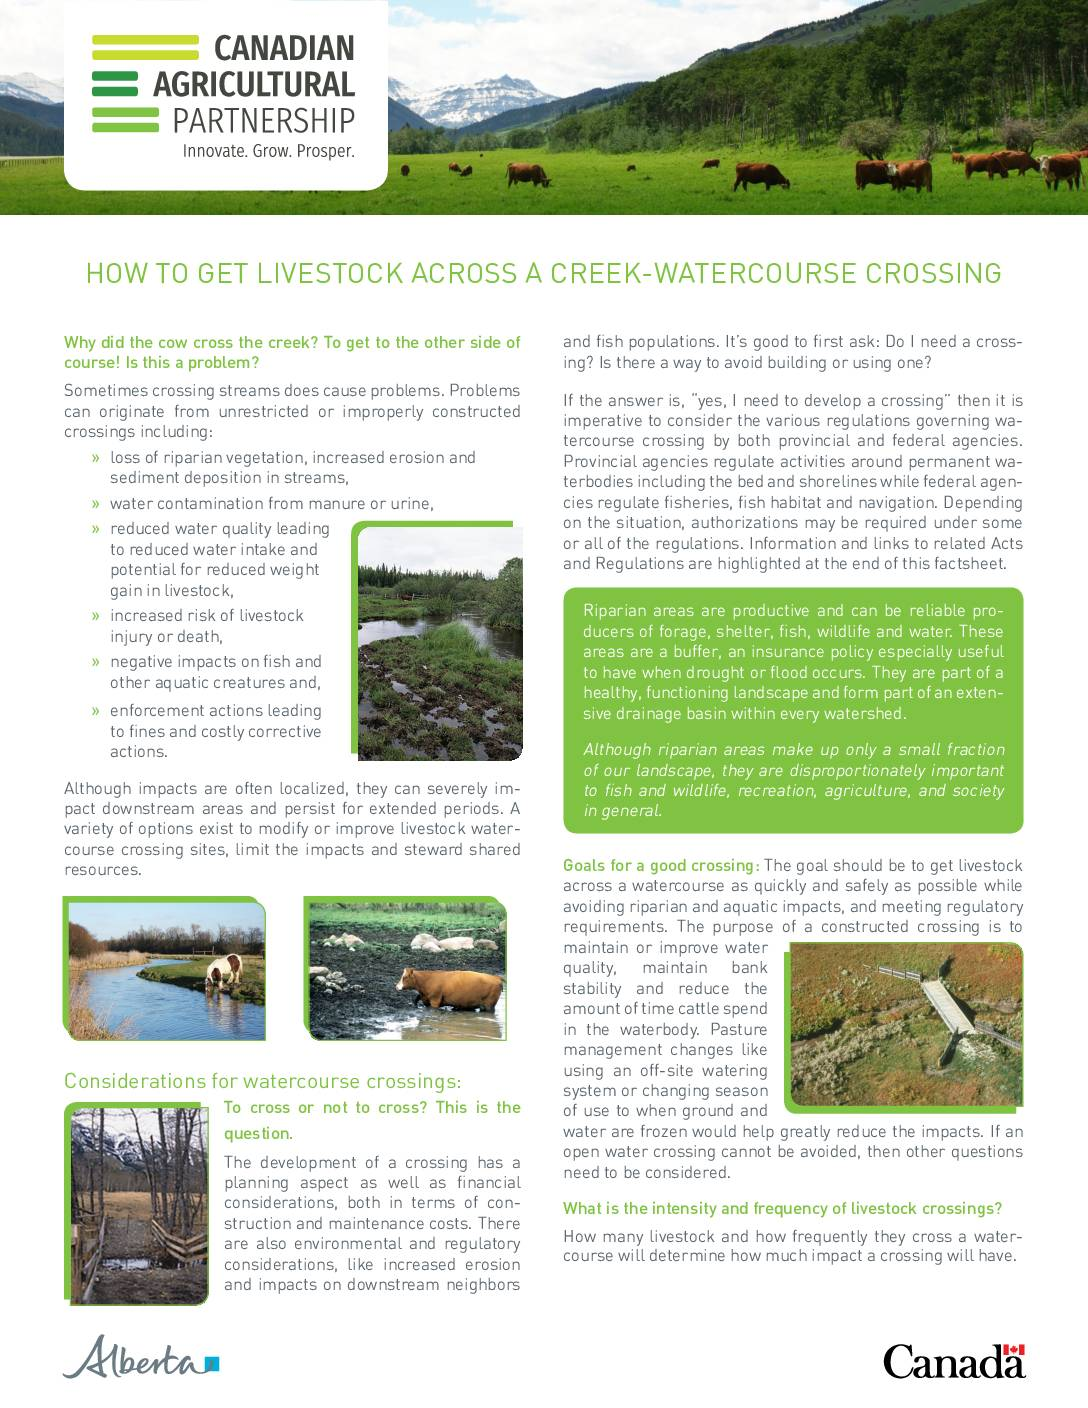 CAP Recommendations for Livestock Watercourse Crossings